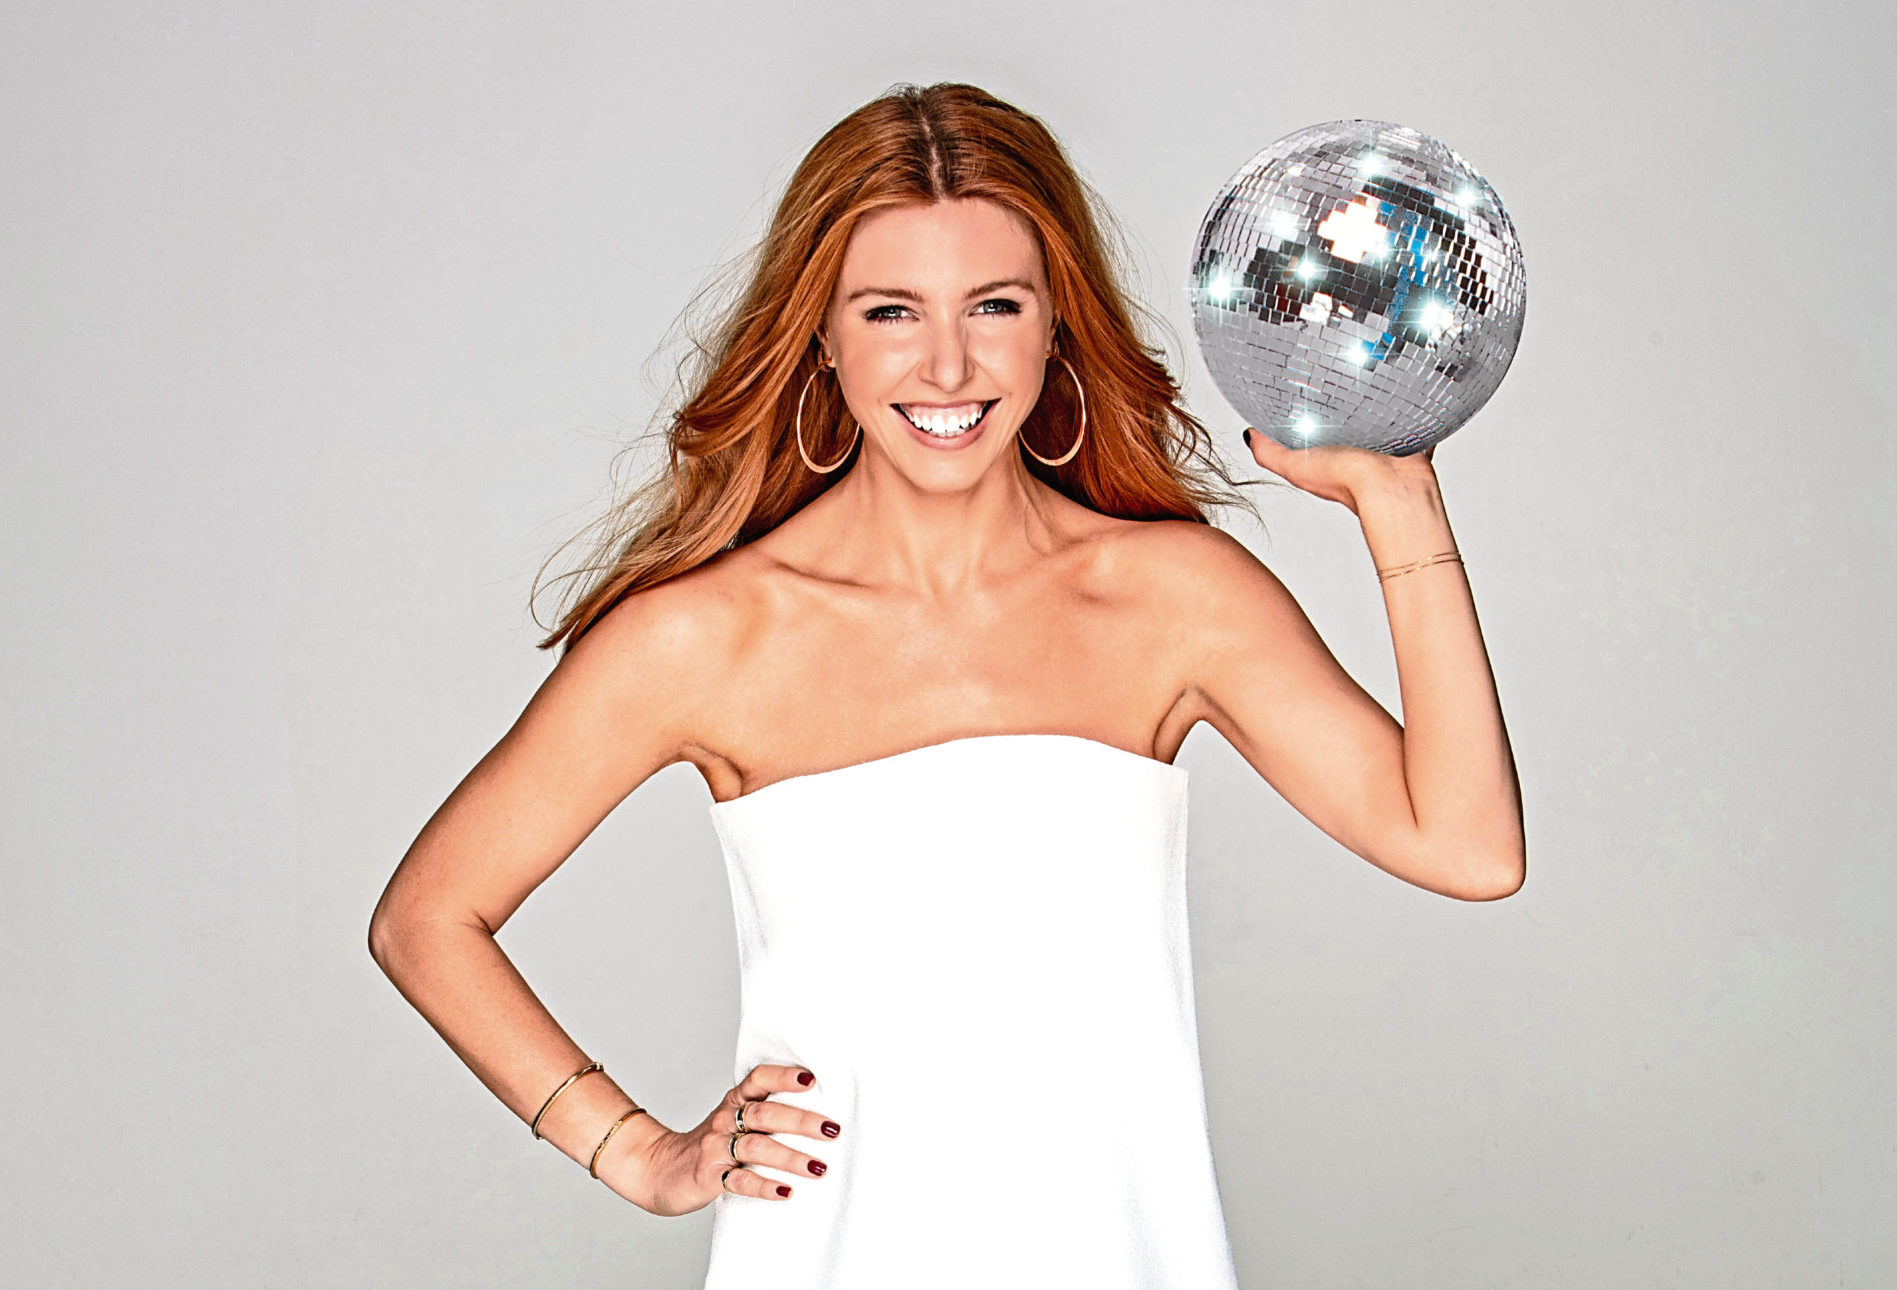 This year's show will be hosted by glitterball winner Stacey Dooley